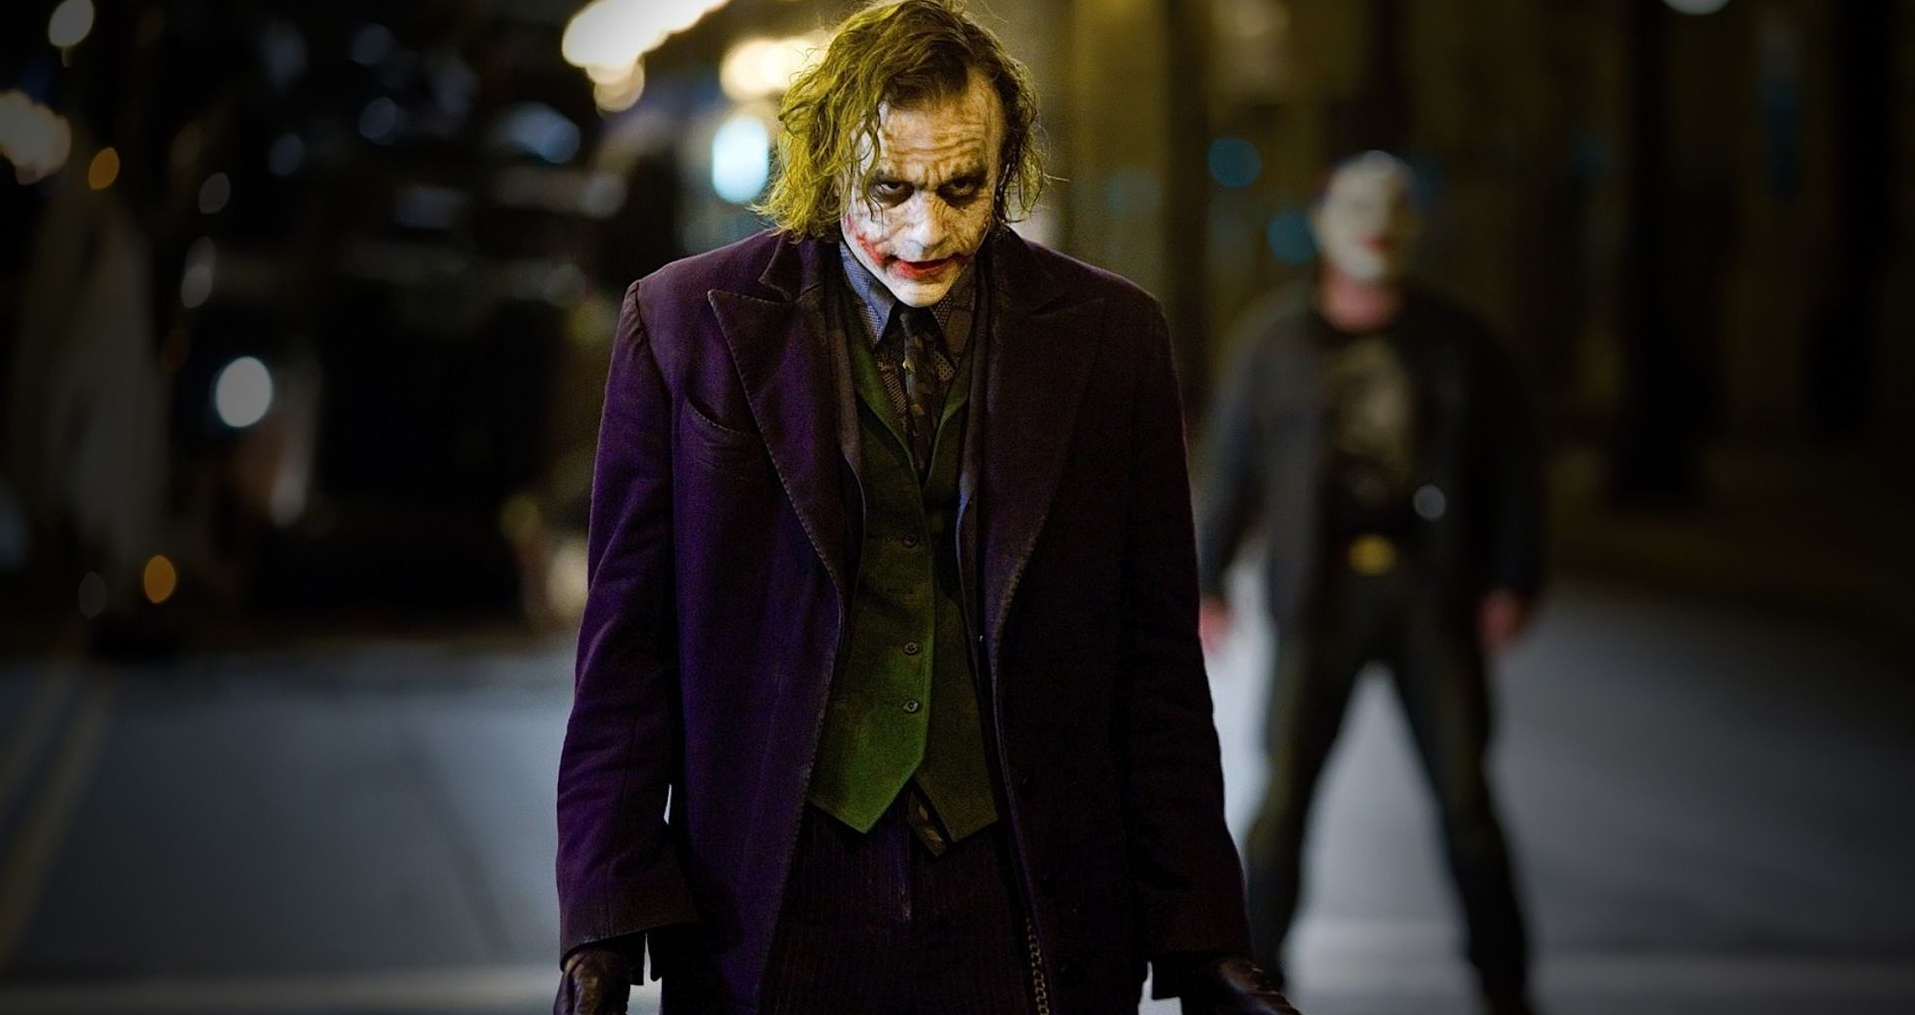 The Joker Is The Real Hero In The Dark Knight UNILAD Screen Shot 2015 09 08 at 15.34.336